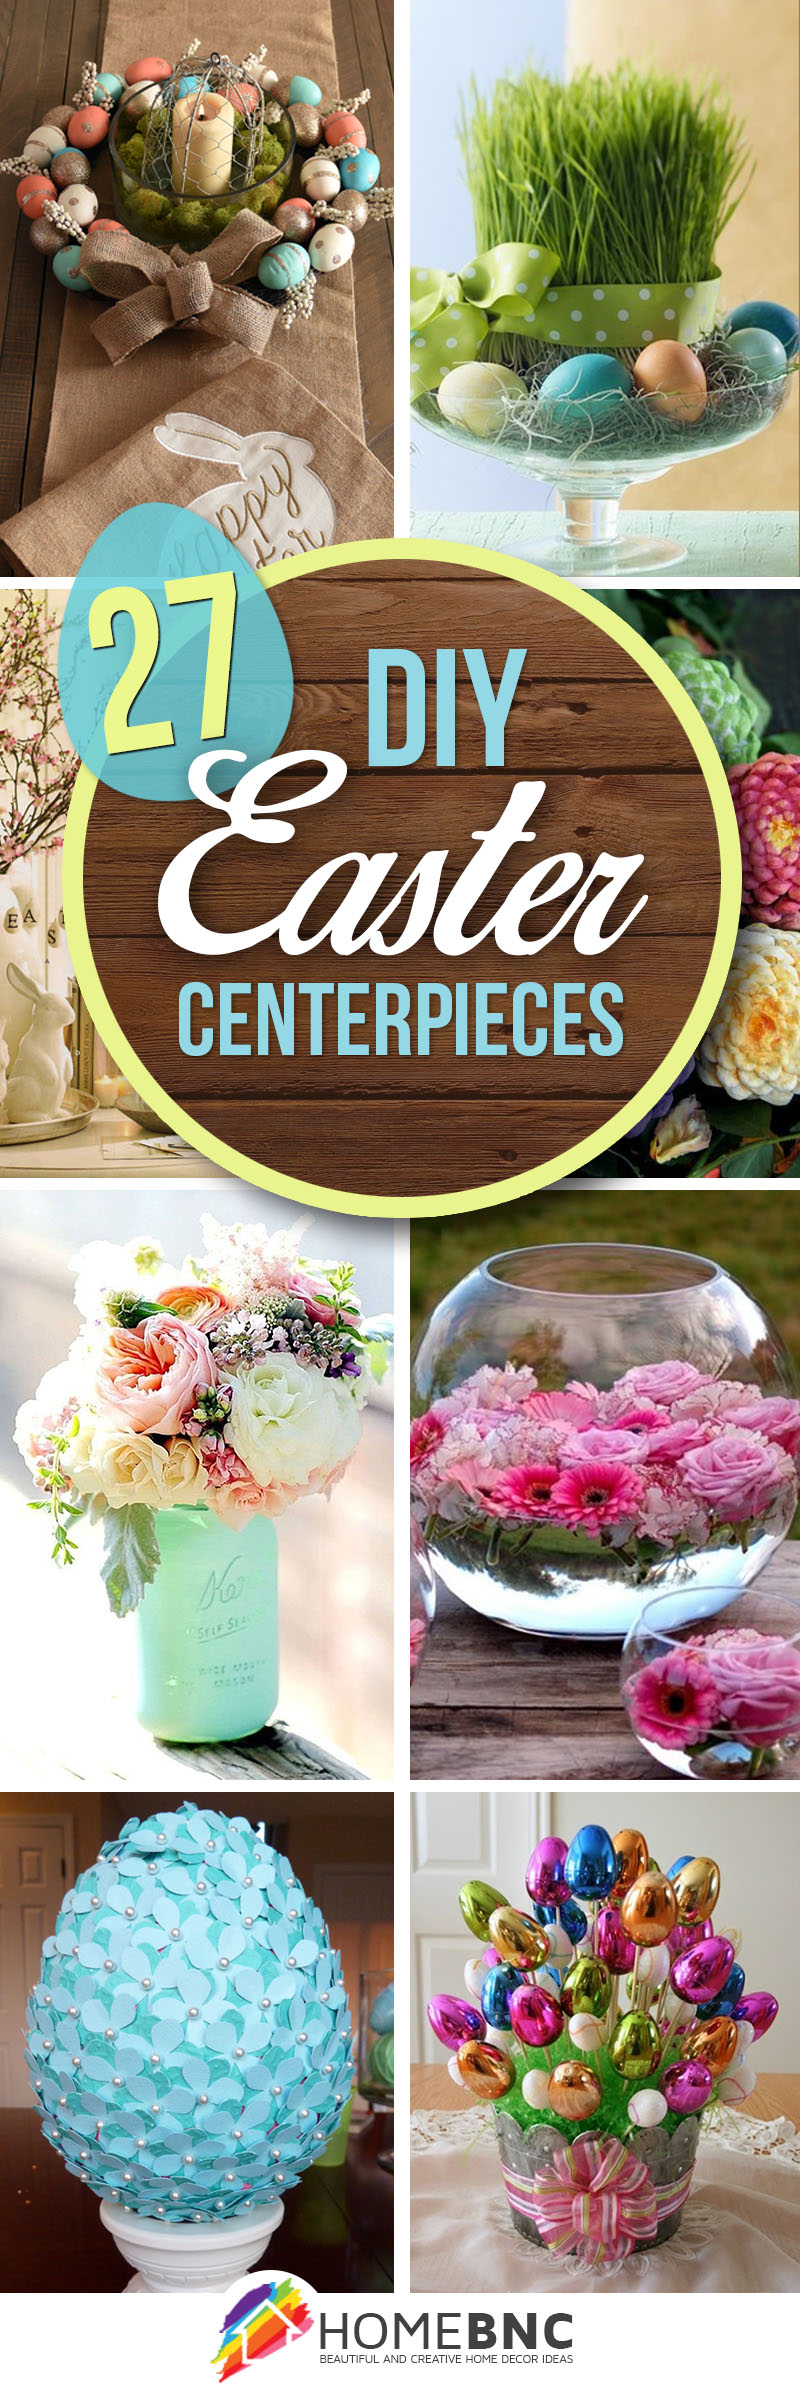 DIY Easter Centerpiece Ideas